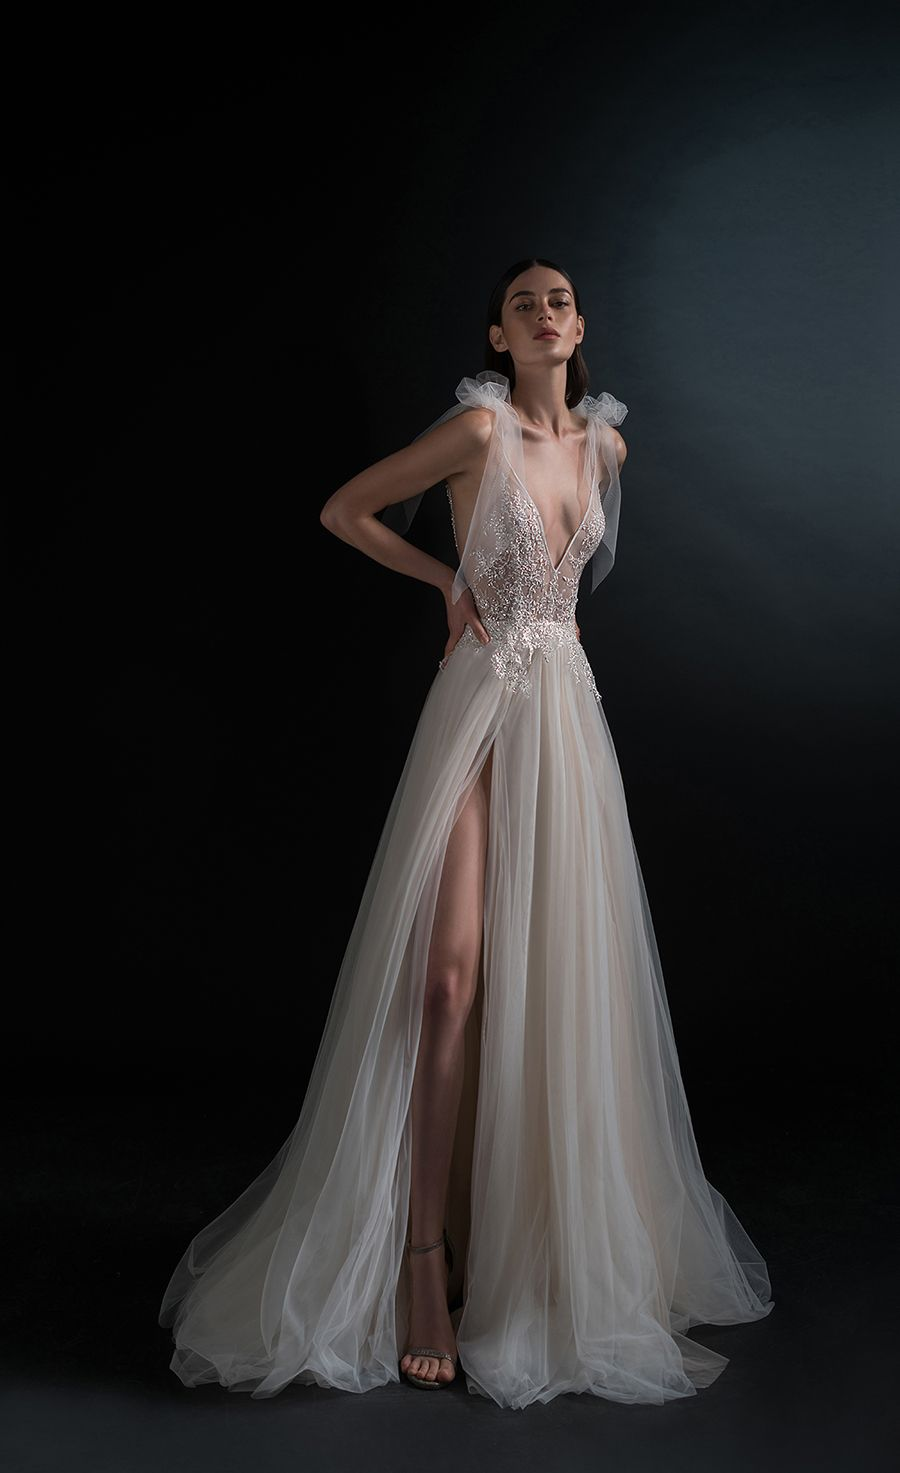 Pure By Inbal Dror 2019 Wedding Dress Collection Inbal Dror Wedding Dresses Inbal Dror Bridal Bridal Fashion Week